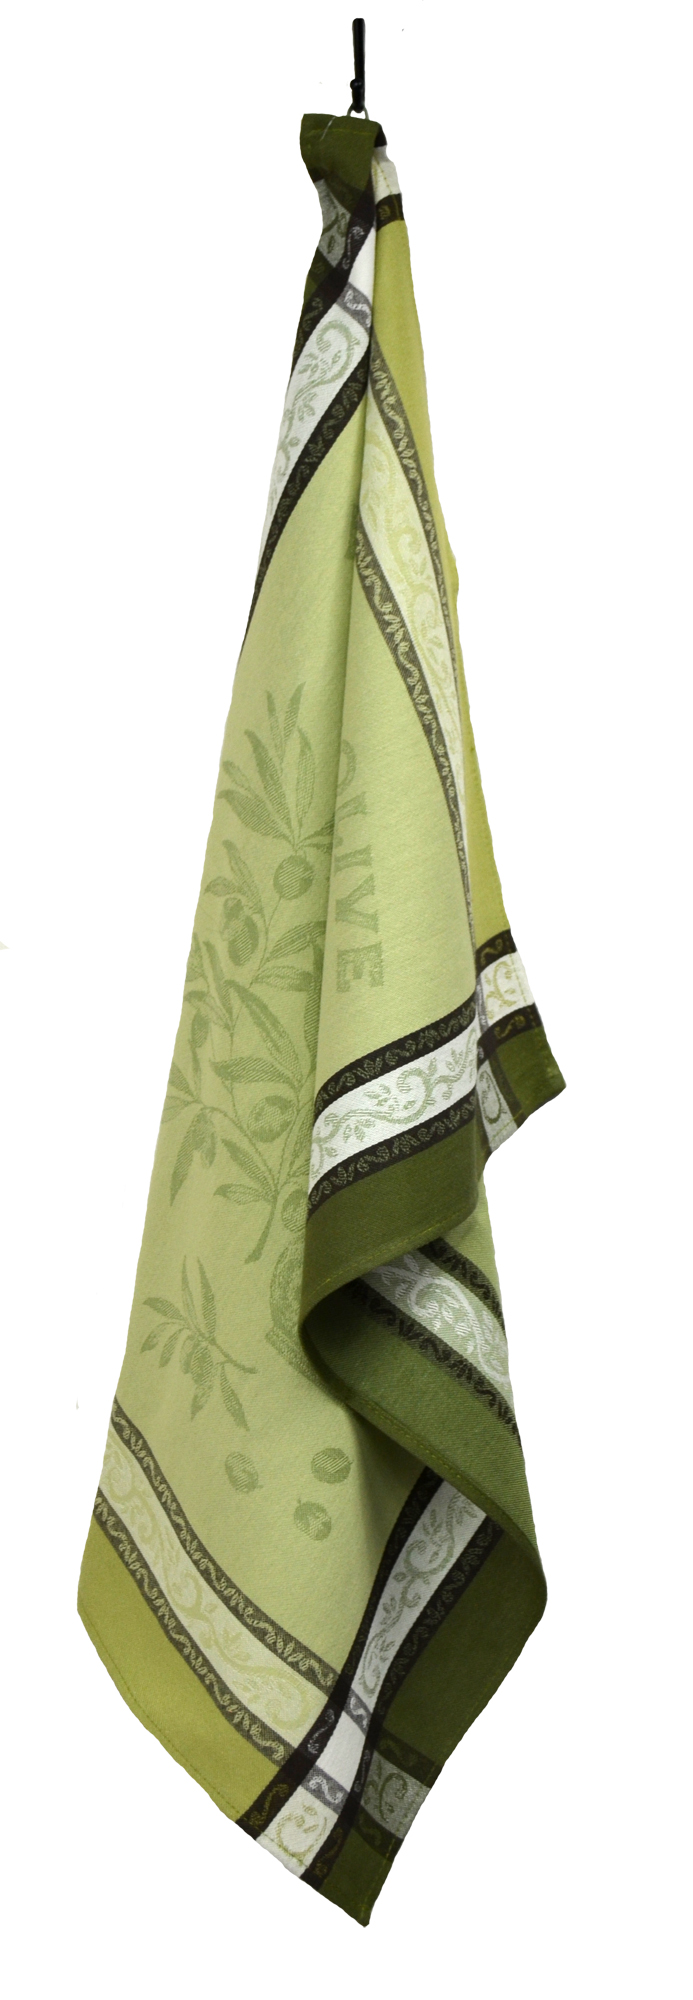 """Olives French Jacquard Tea Towel - Collection """"Olive"""" Green, Size: 21 x 29 inches, Price CAN$19.95"""